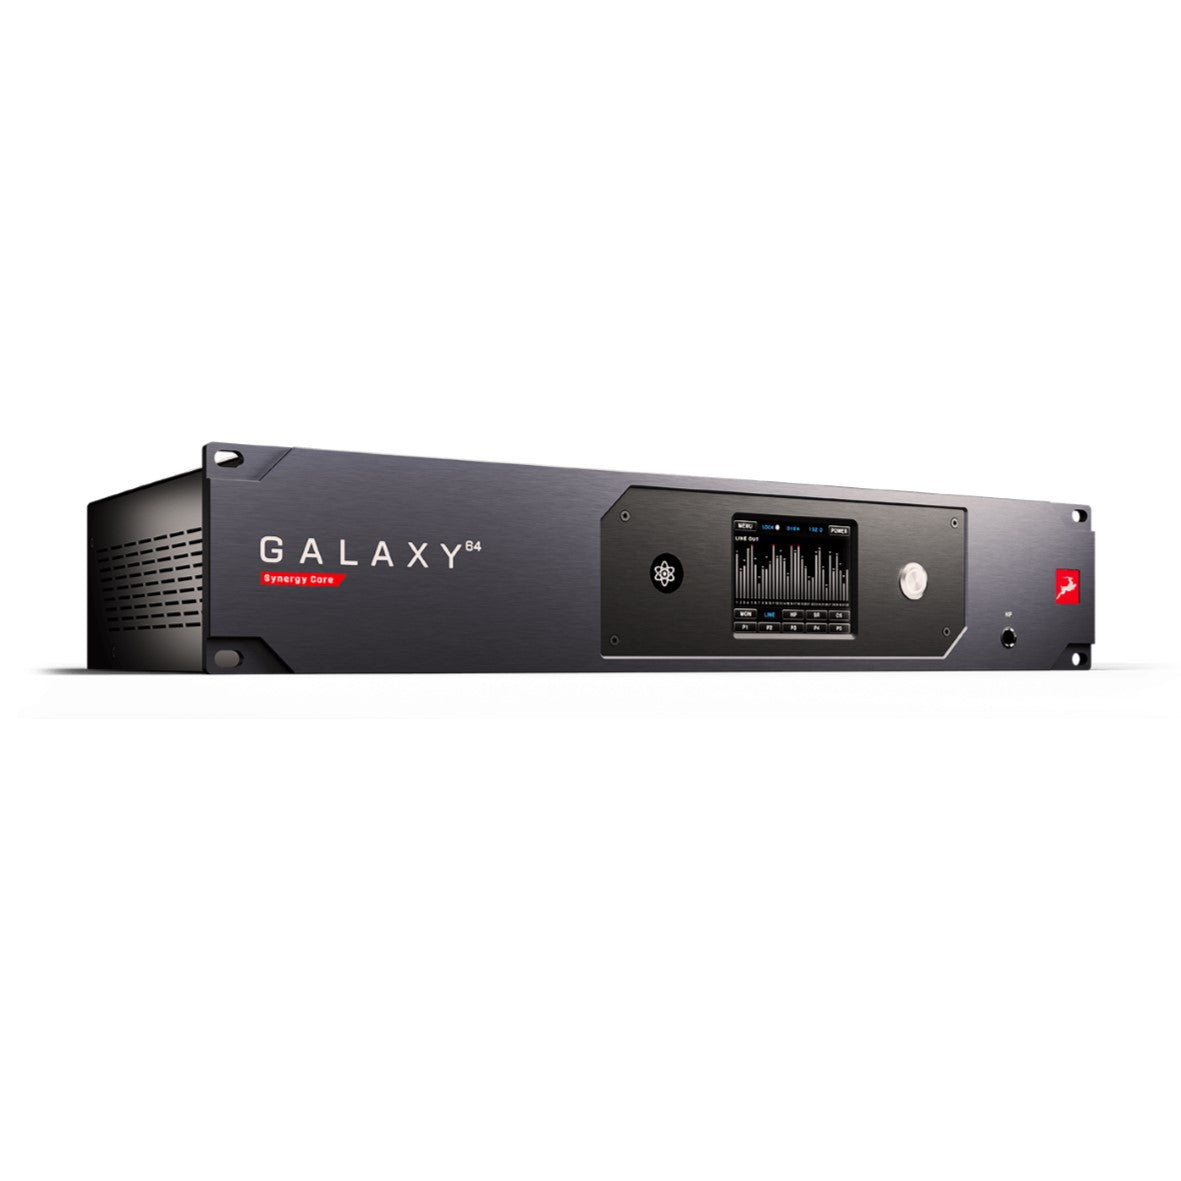 Galaxy 64 Synergy Core